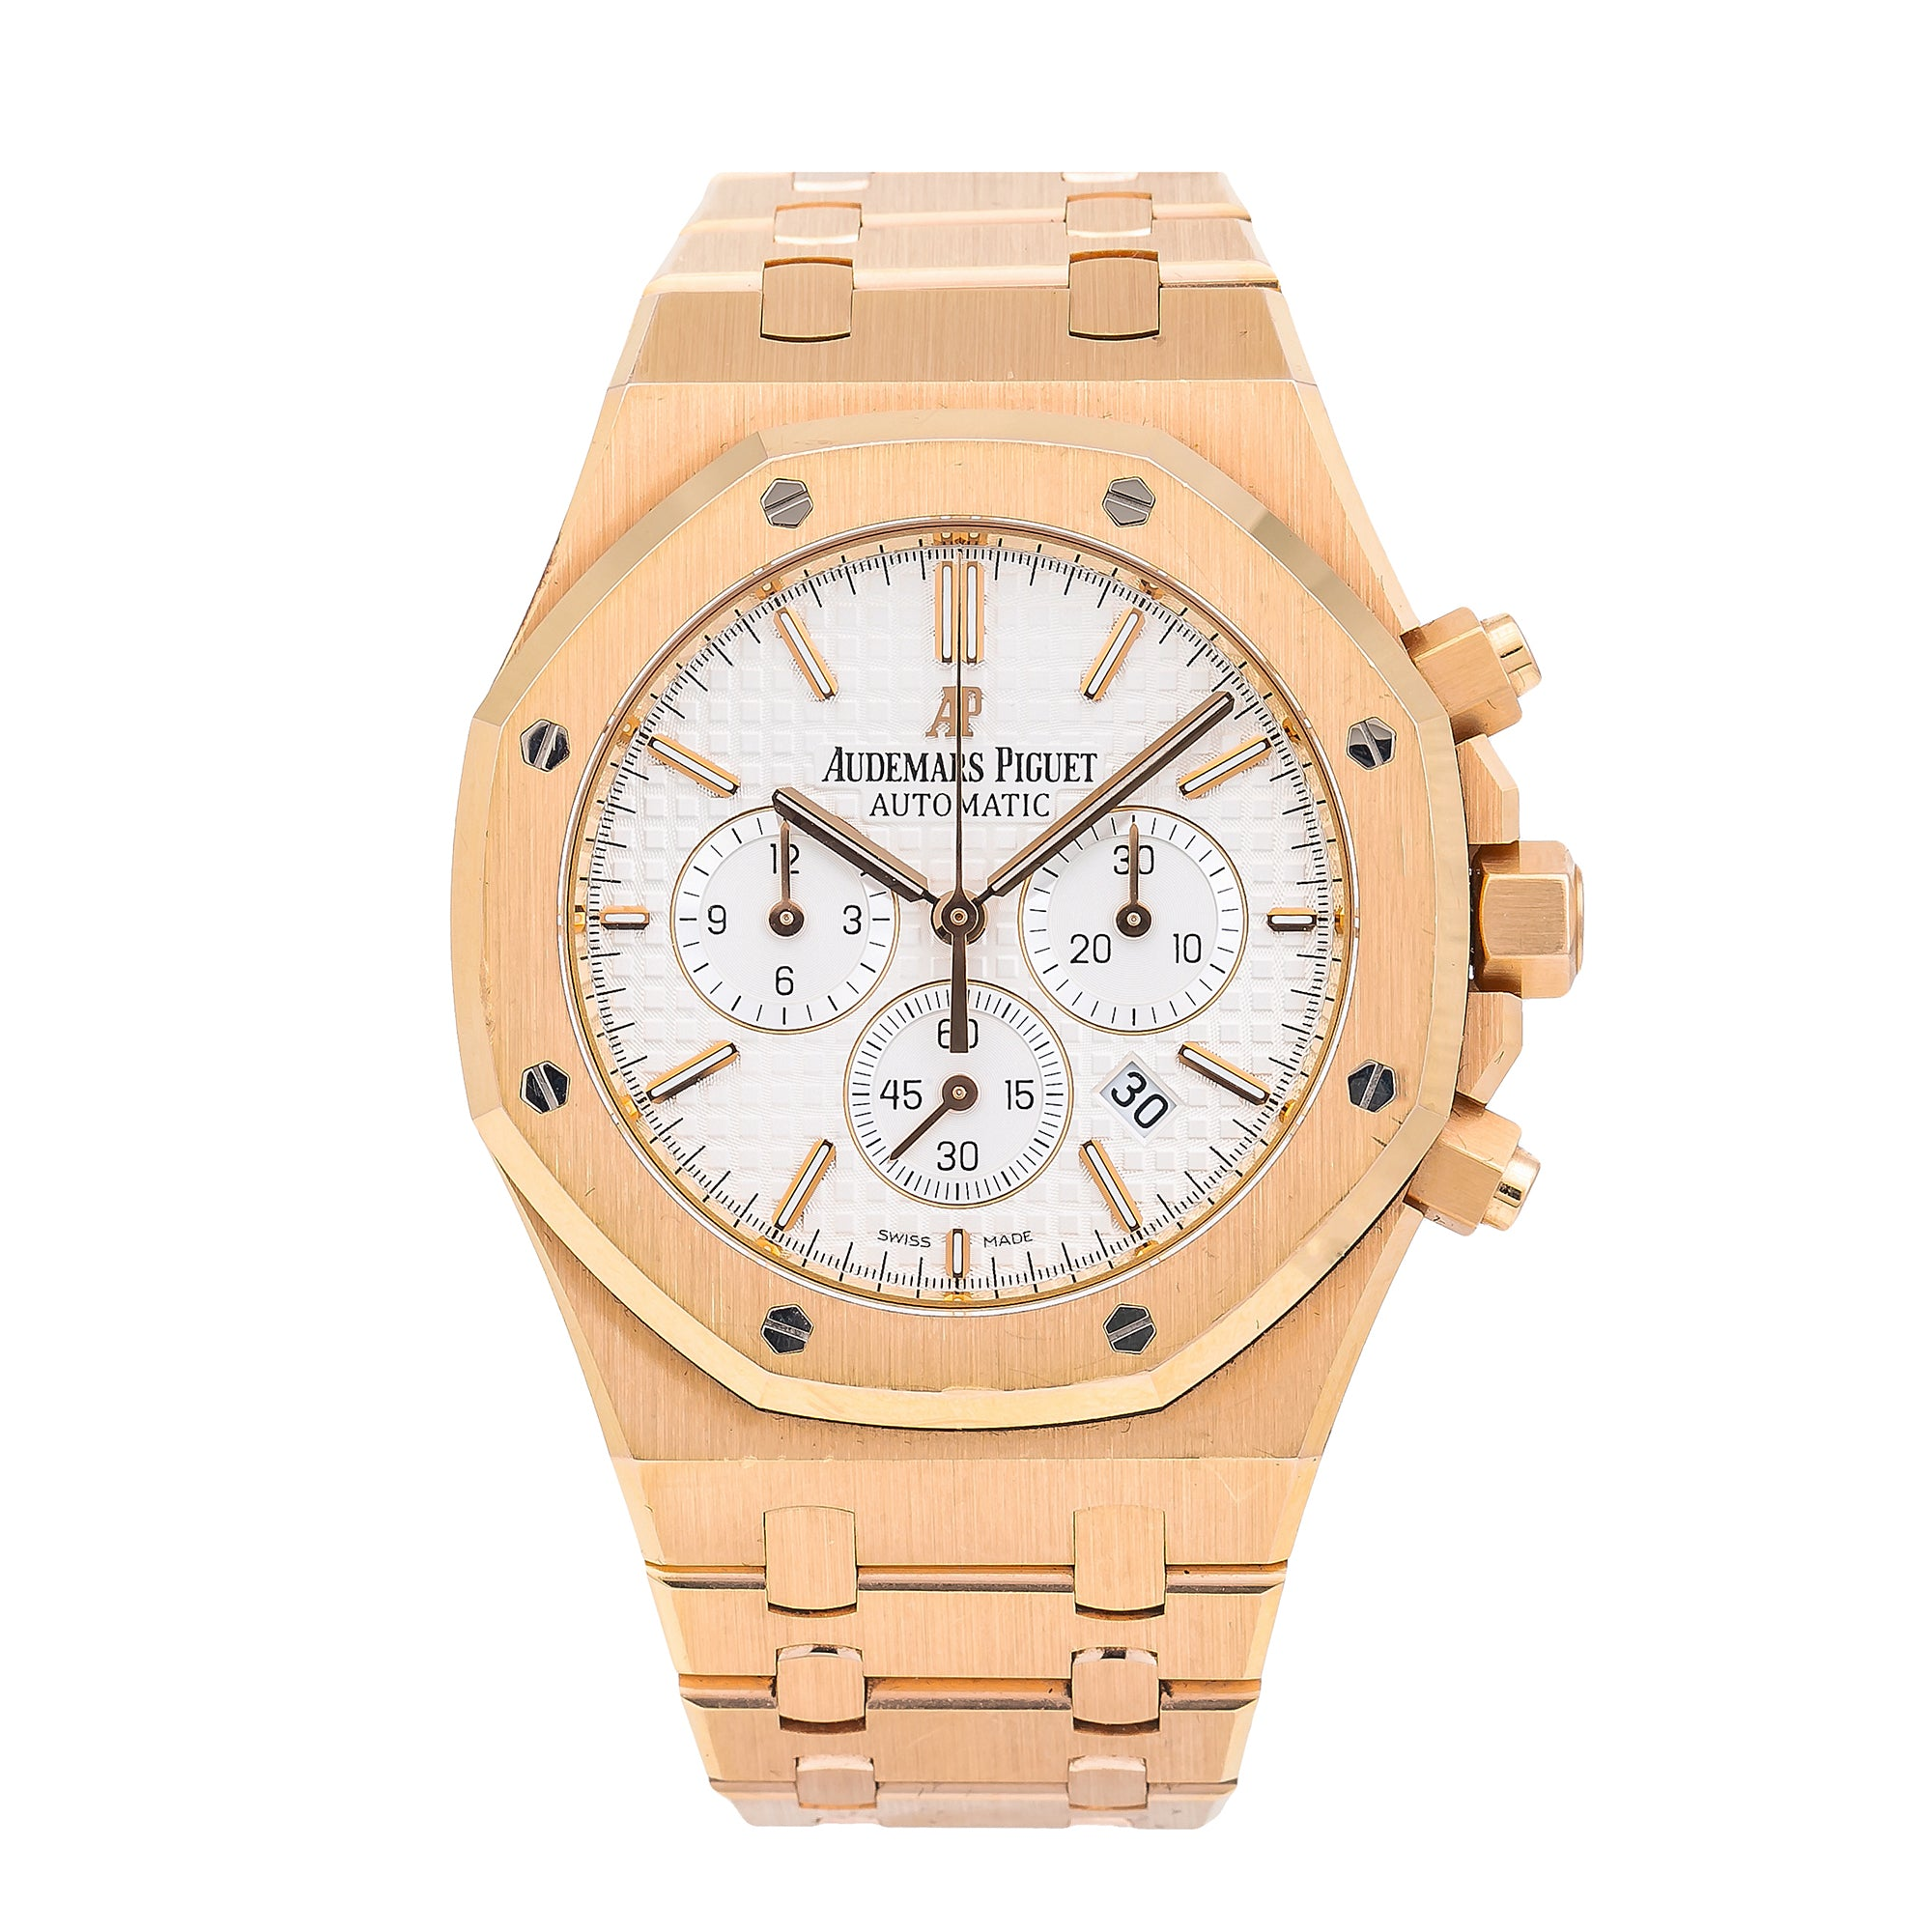 Audemars Piguet Royal Oak Chronograph 26320OR 41MM White Dial With Rose Gold Bracelet